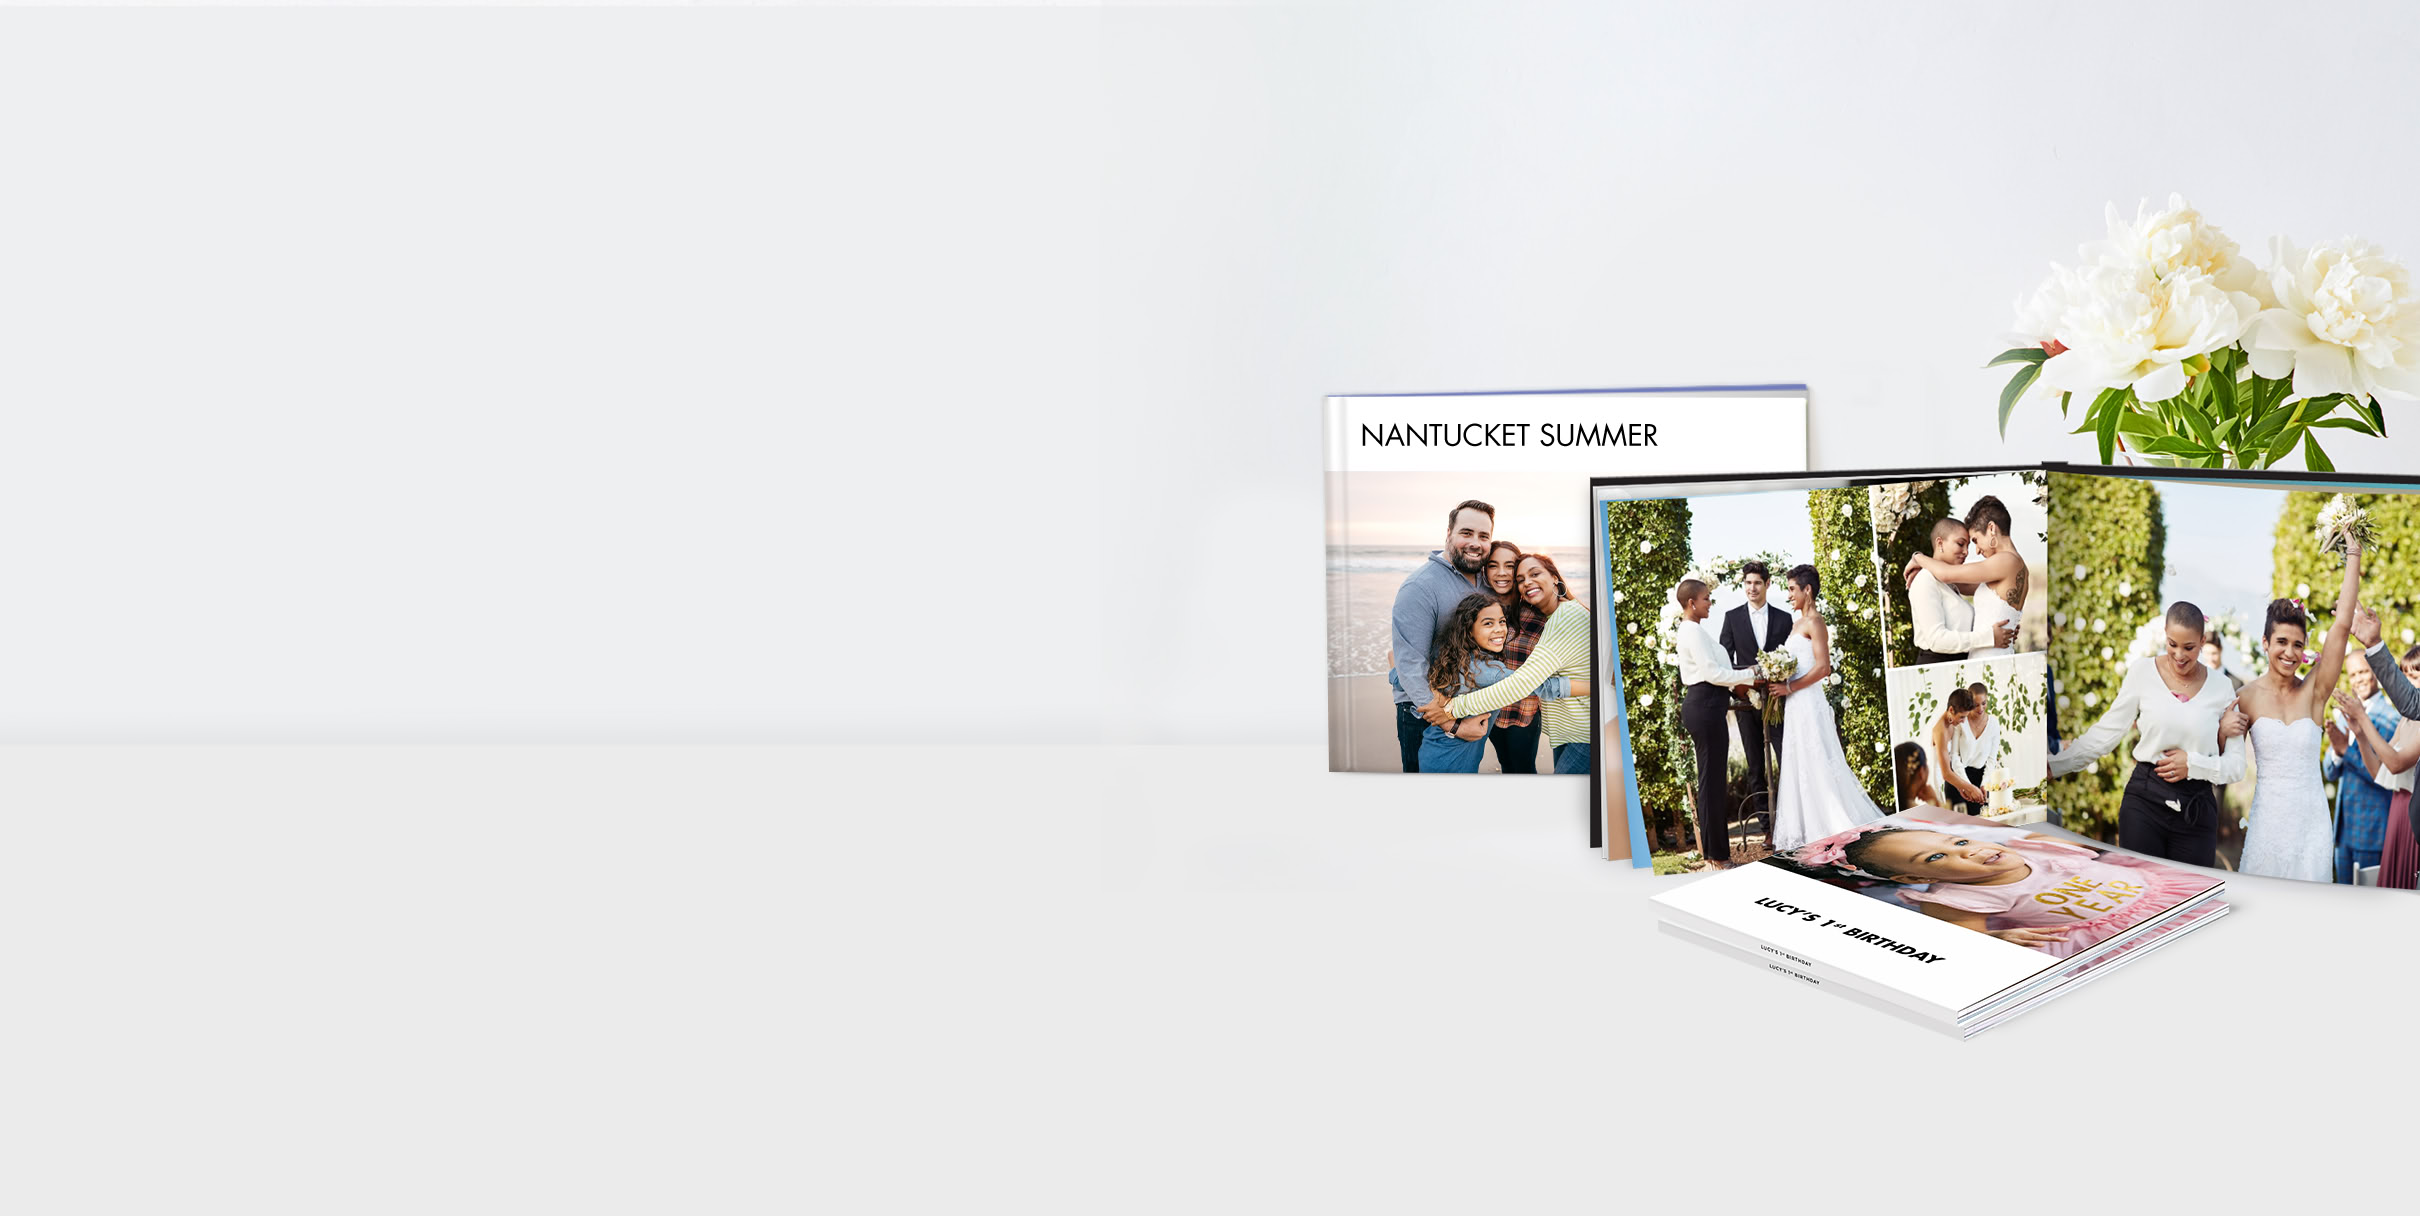 Personalized Photo Gifts Online Photo Printing Costco